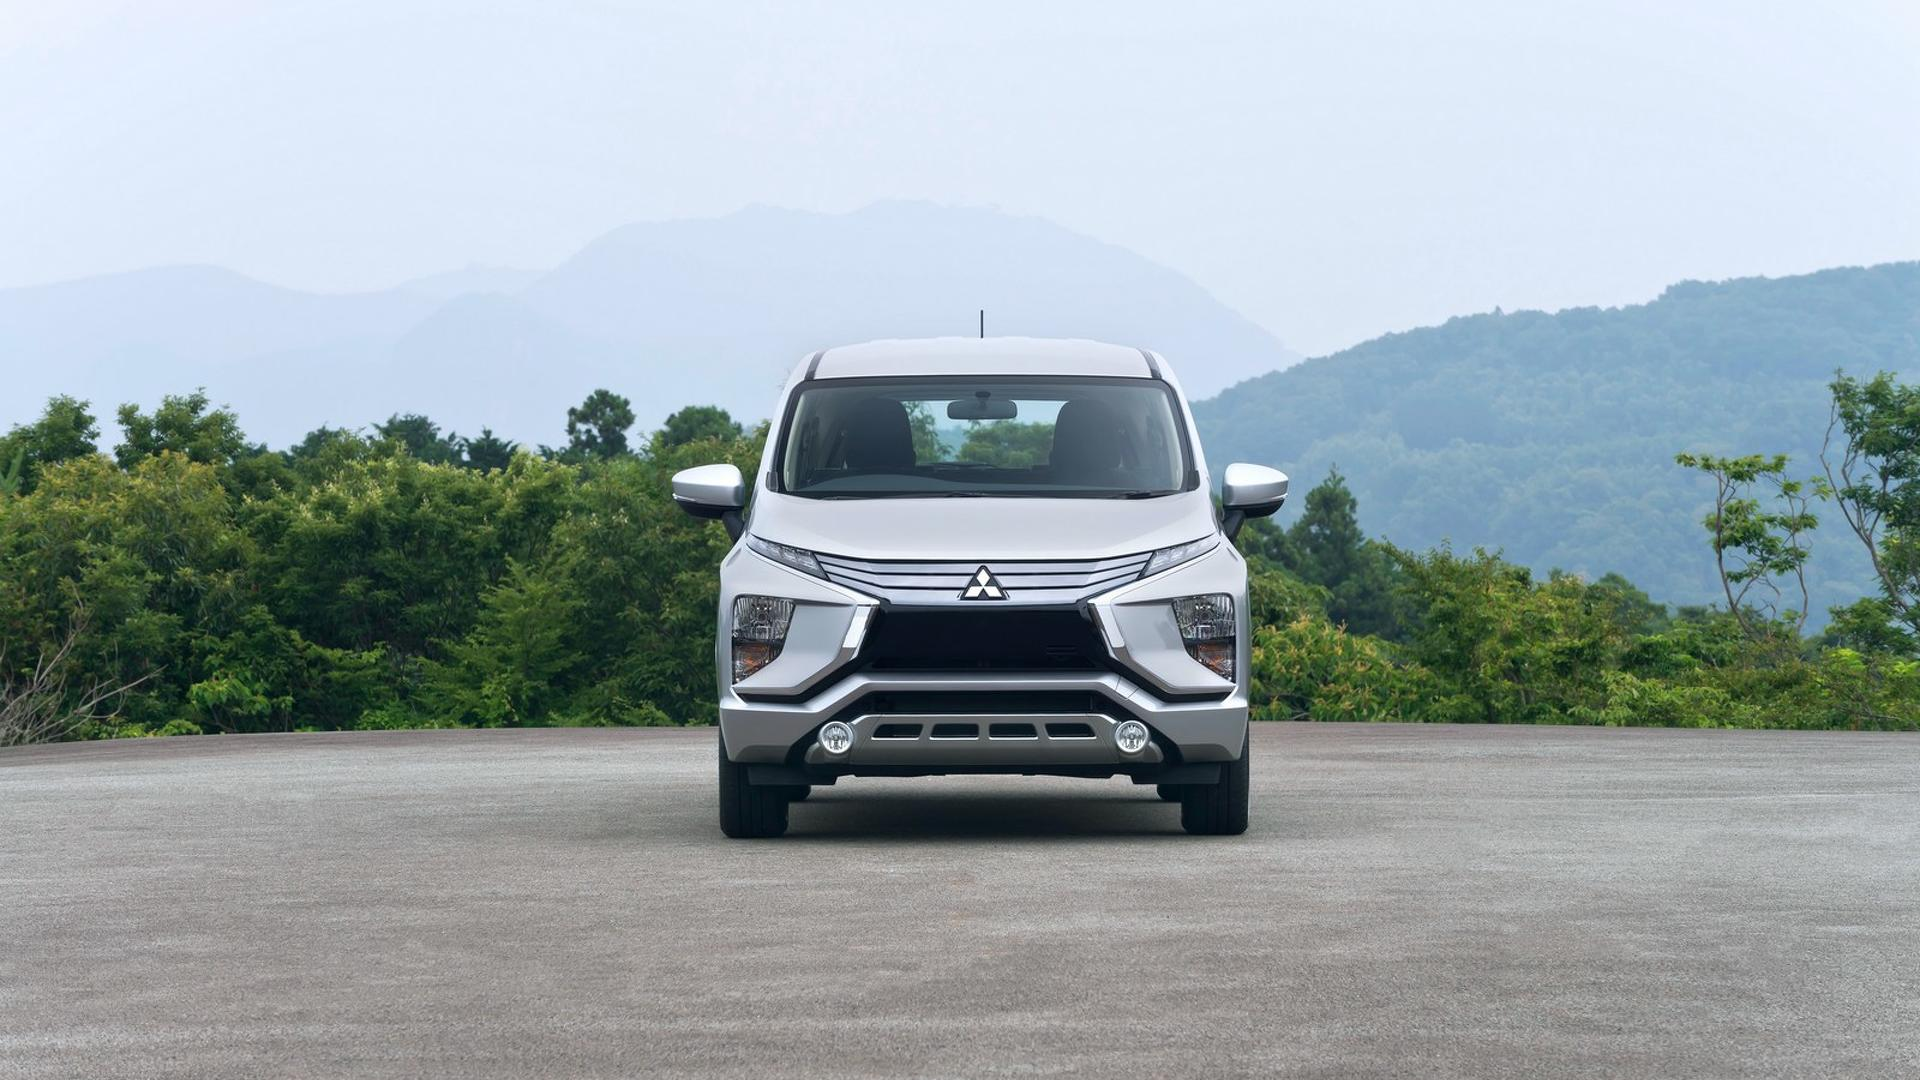 mitsubishi expander website with Mitsubishi Xpander Mpv Debuts Indonesia on Conceptcar likewise Clp 2018 Mitsubishi Outlander Vs 2018 Mitsubishi Outlander Sport in addition MoTeC 7mm Panel Light  Yellow together with Mitsubishi furthermore Mitsubishi Asx 2014 Malaysia Price.